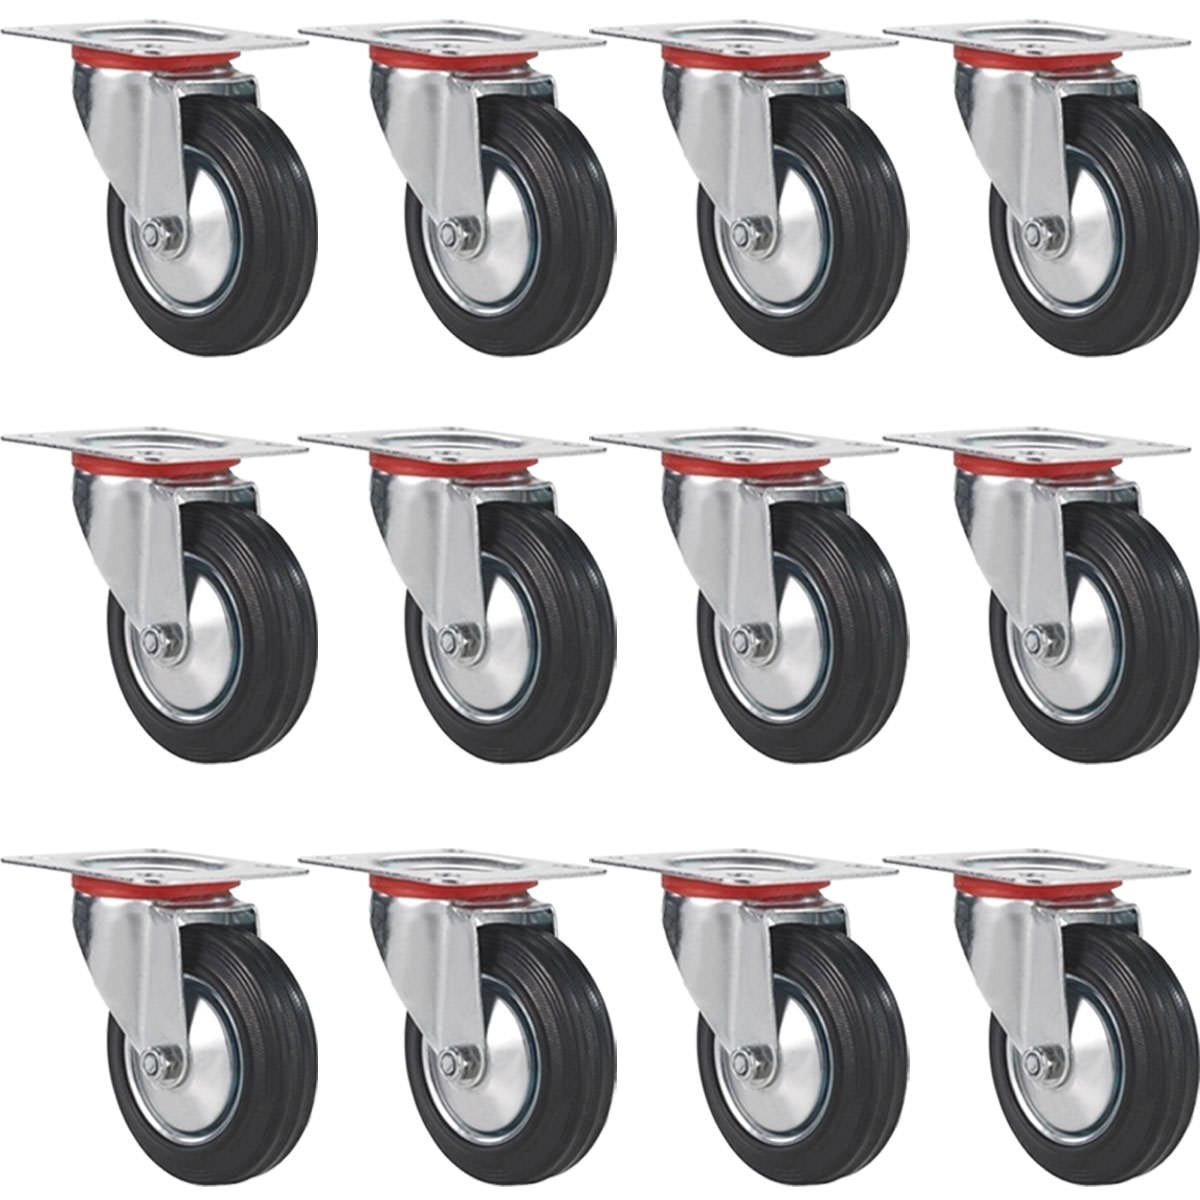 """12 pack swivel caster wheels 3/"""" rubber base with top plate bearing heavy duty"""